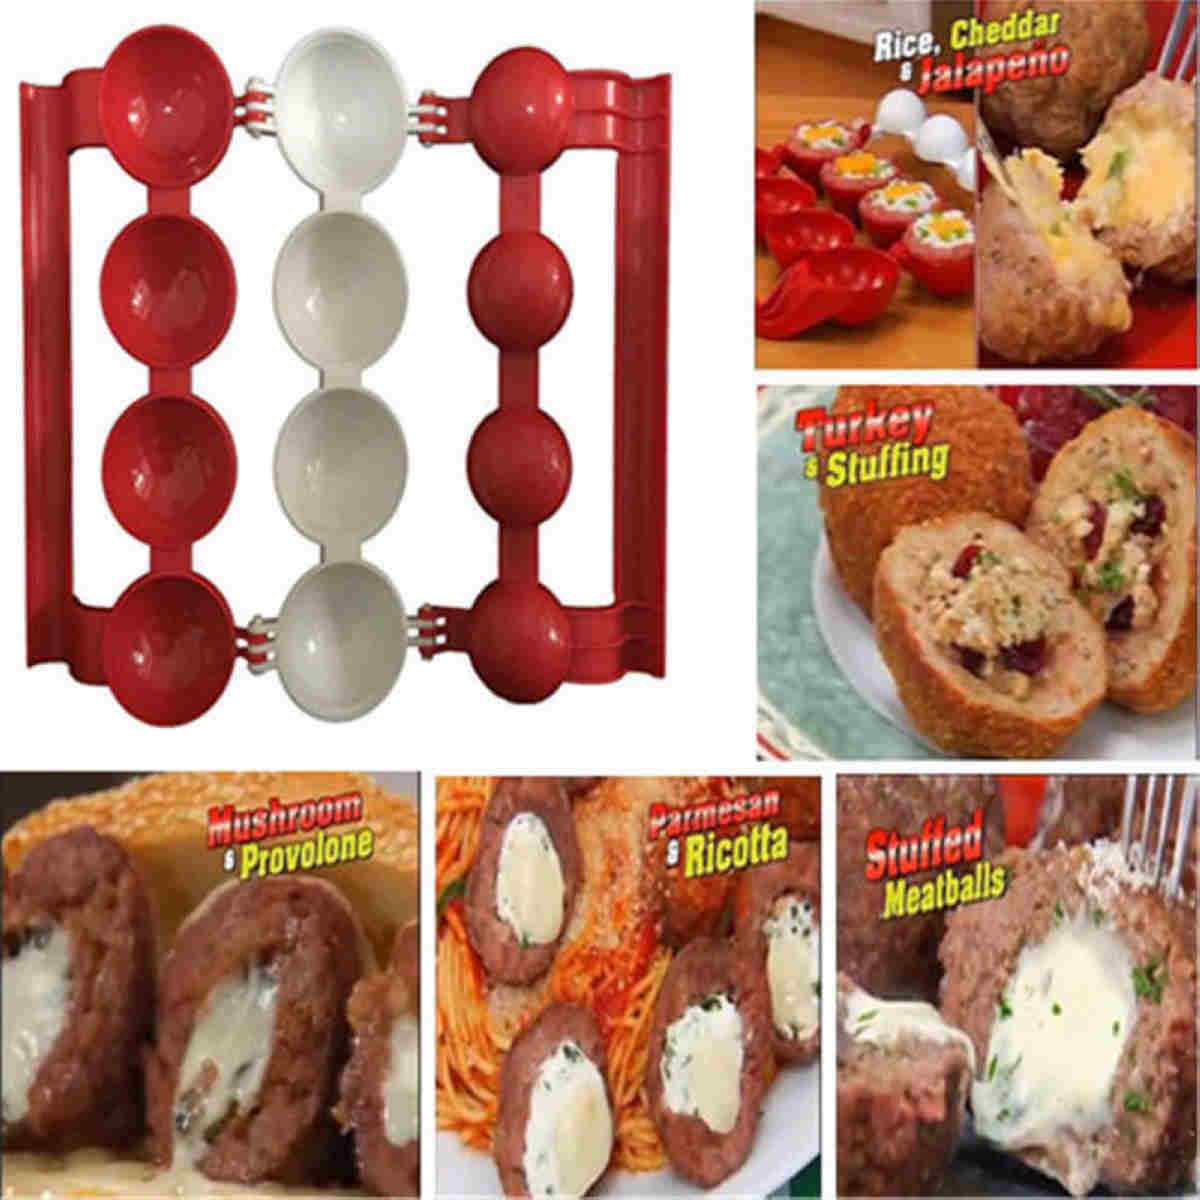 1PC Cooking Meat Ball Fish Meatball Maker Burger Mold Scoop Kitchen Tool S3